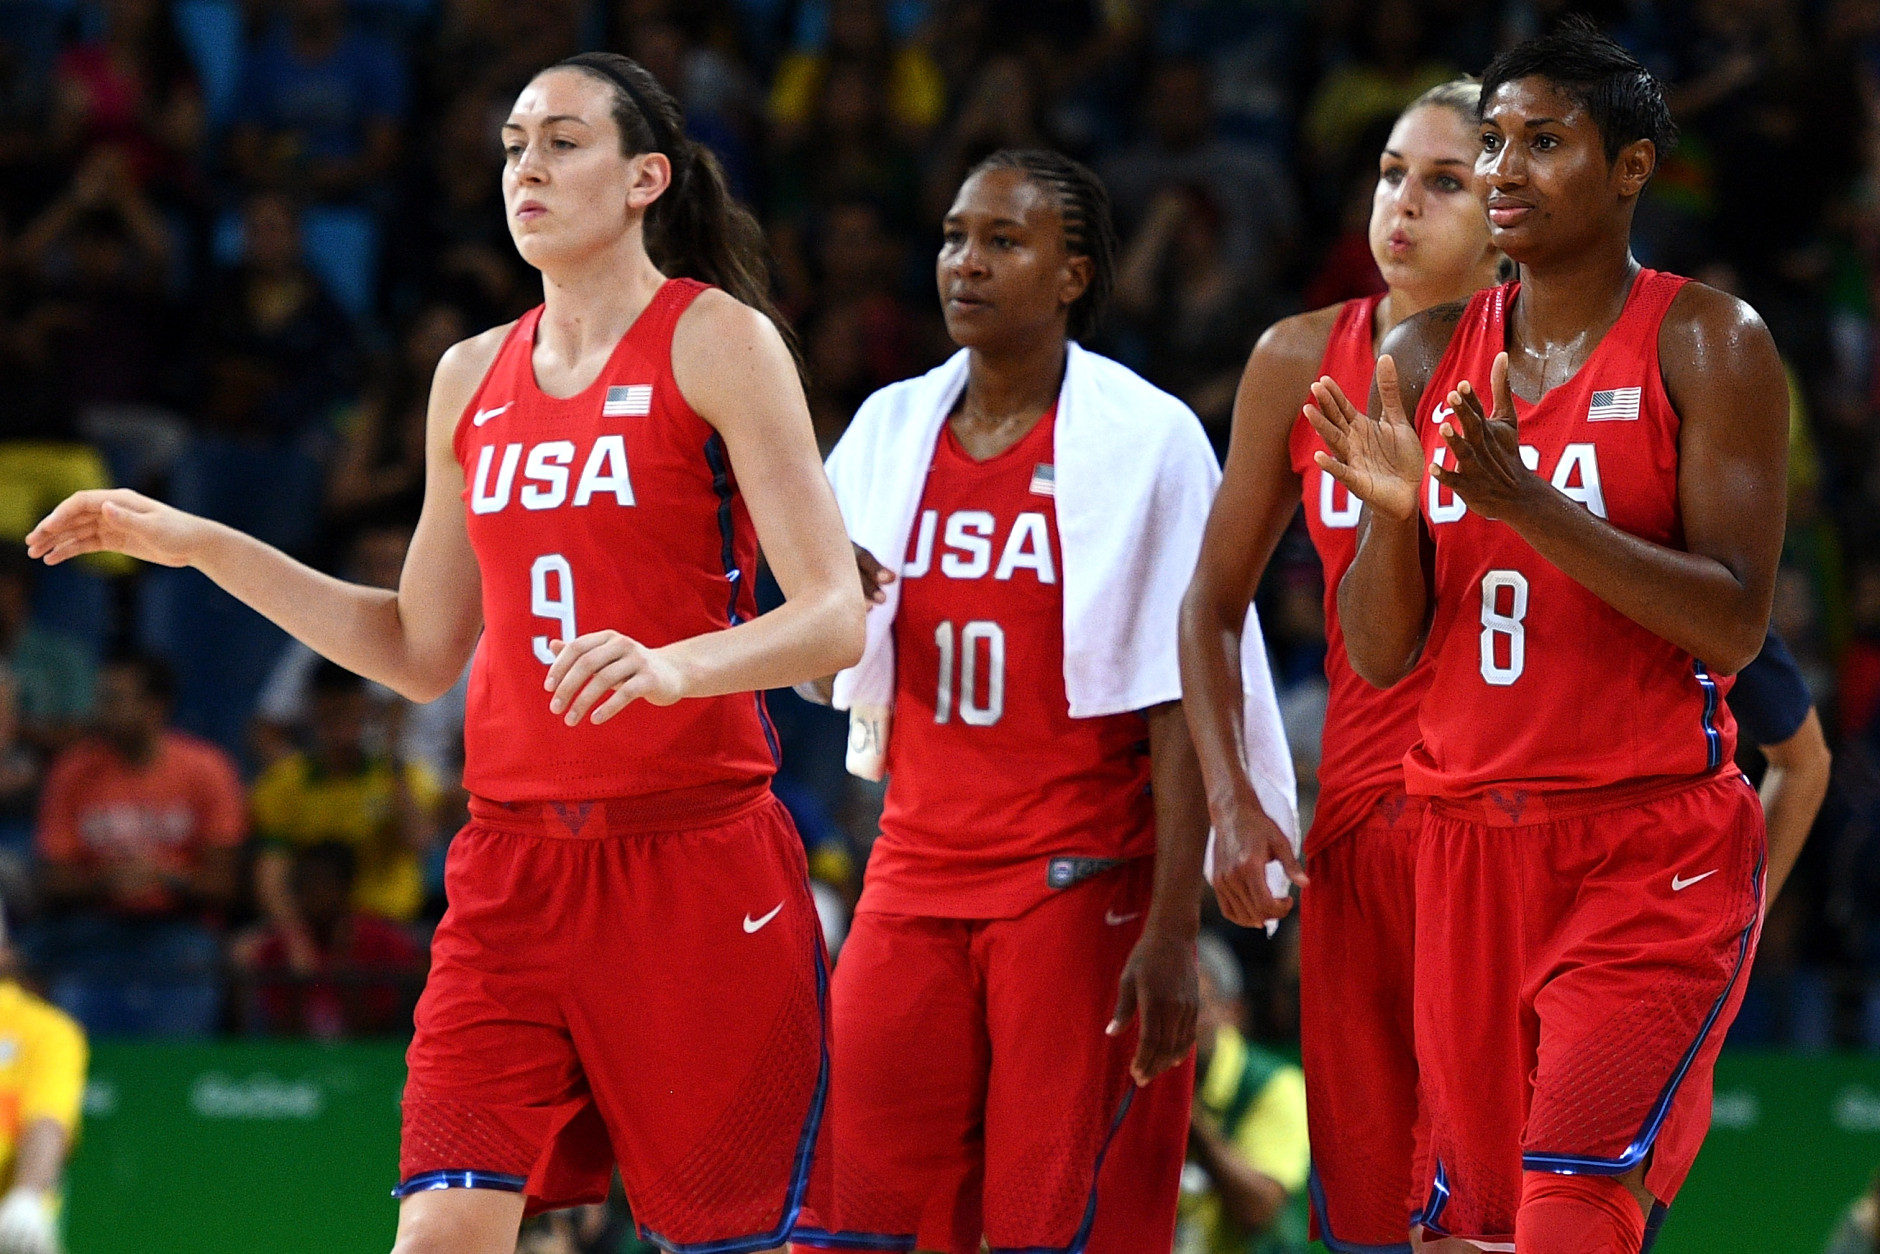 RIO DE JANEIRO, BRAZIL - AUGUST 18:  Breanna Stewart #9, Tamika Catchings #10 and Angel Mccoughtry #8 of the United States celebrate after the United States defeated France 86-67 in a Women's Semifinal Basketball game at the Carioca Arena on Day 13 of the 2016 Rio Olympic Games on August 18, 2016 in Rio de Janeiro, Brazil.  (Photo by David Ramos/Getty Images)